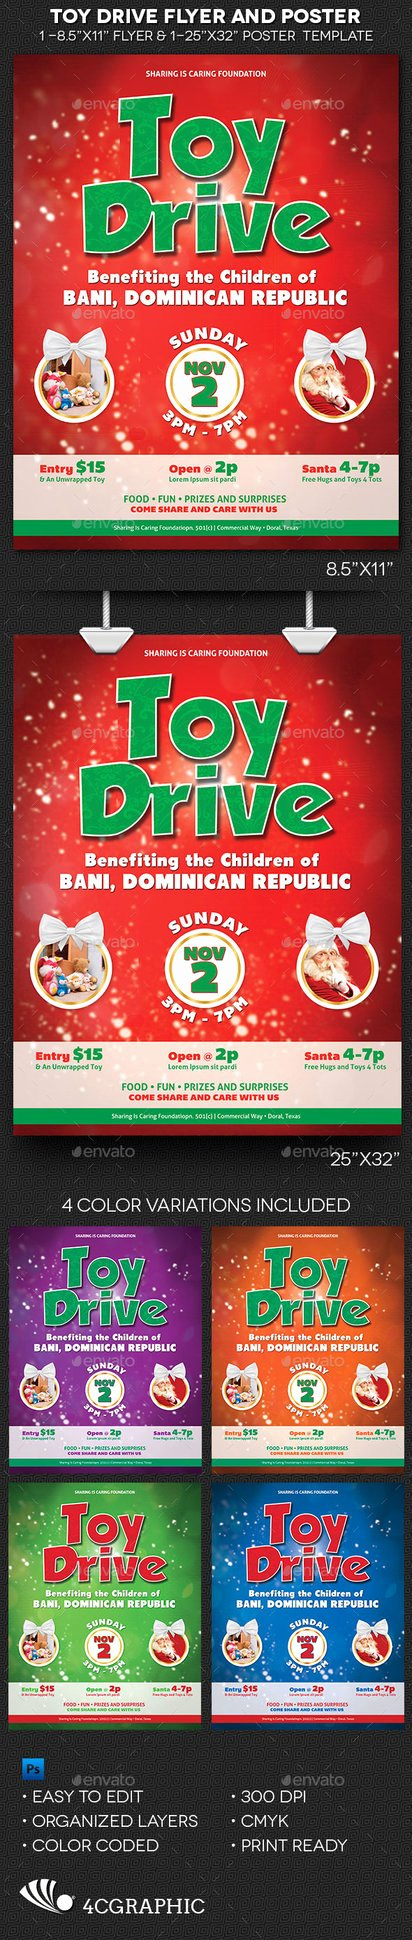 Toy Drive Flyer Template Lovely toy Drive Flyer and Poster Template by Godserv On Deviantart